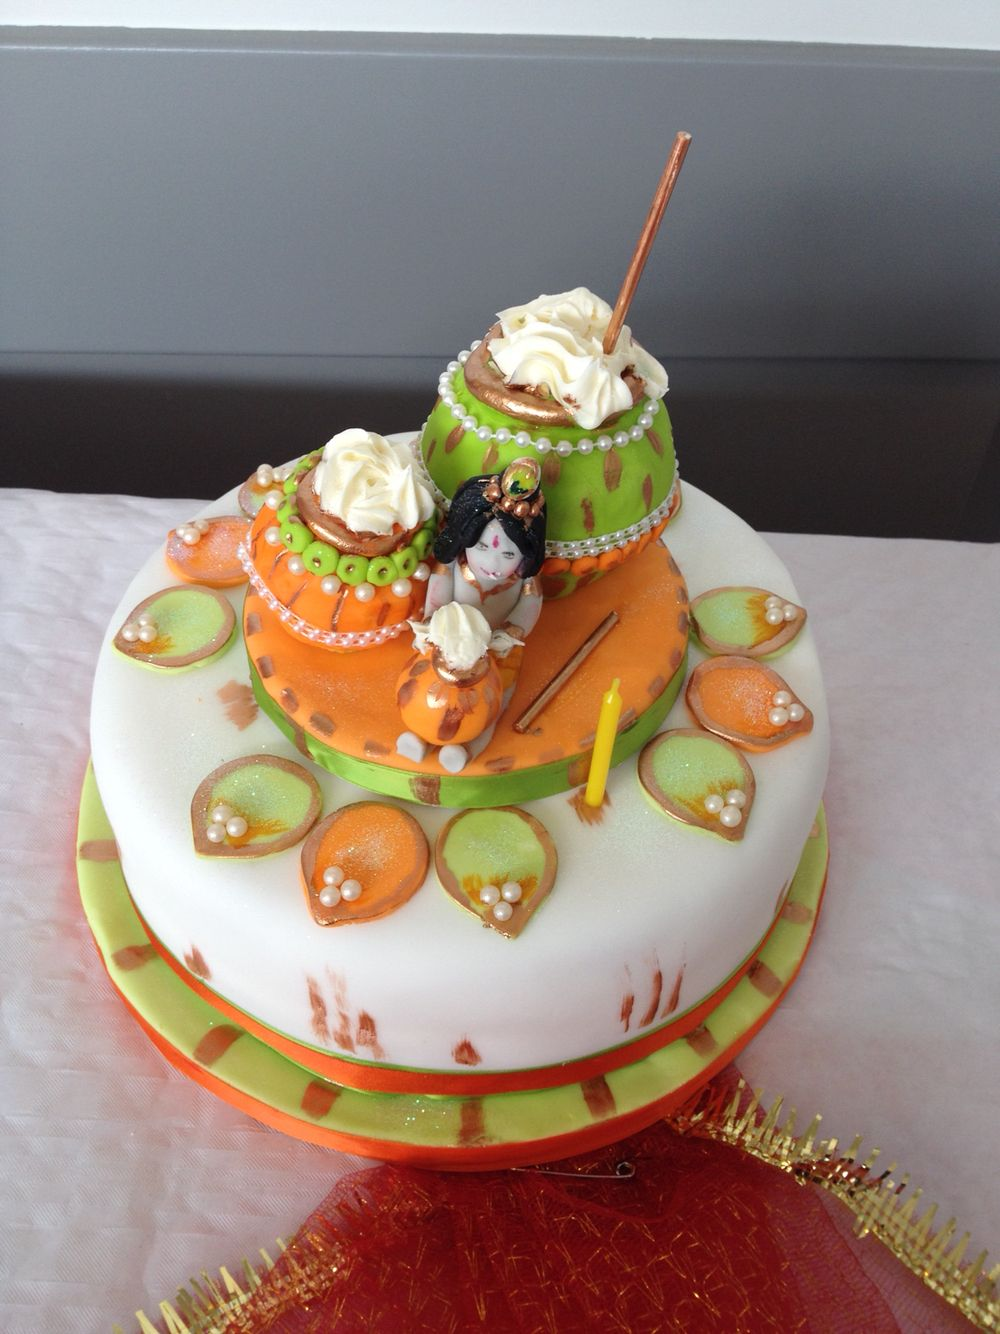 Janmashtami 2014 | Yummy cakes, Indian cake, Indian wedding cakes